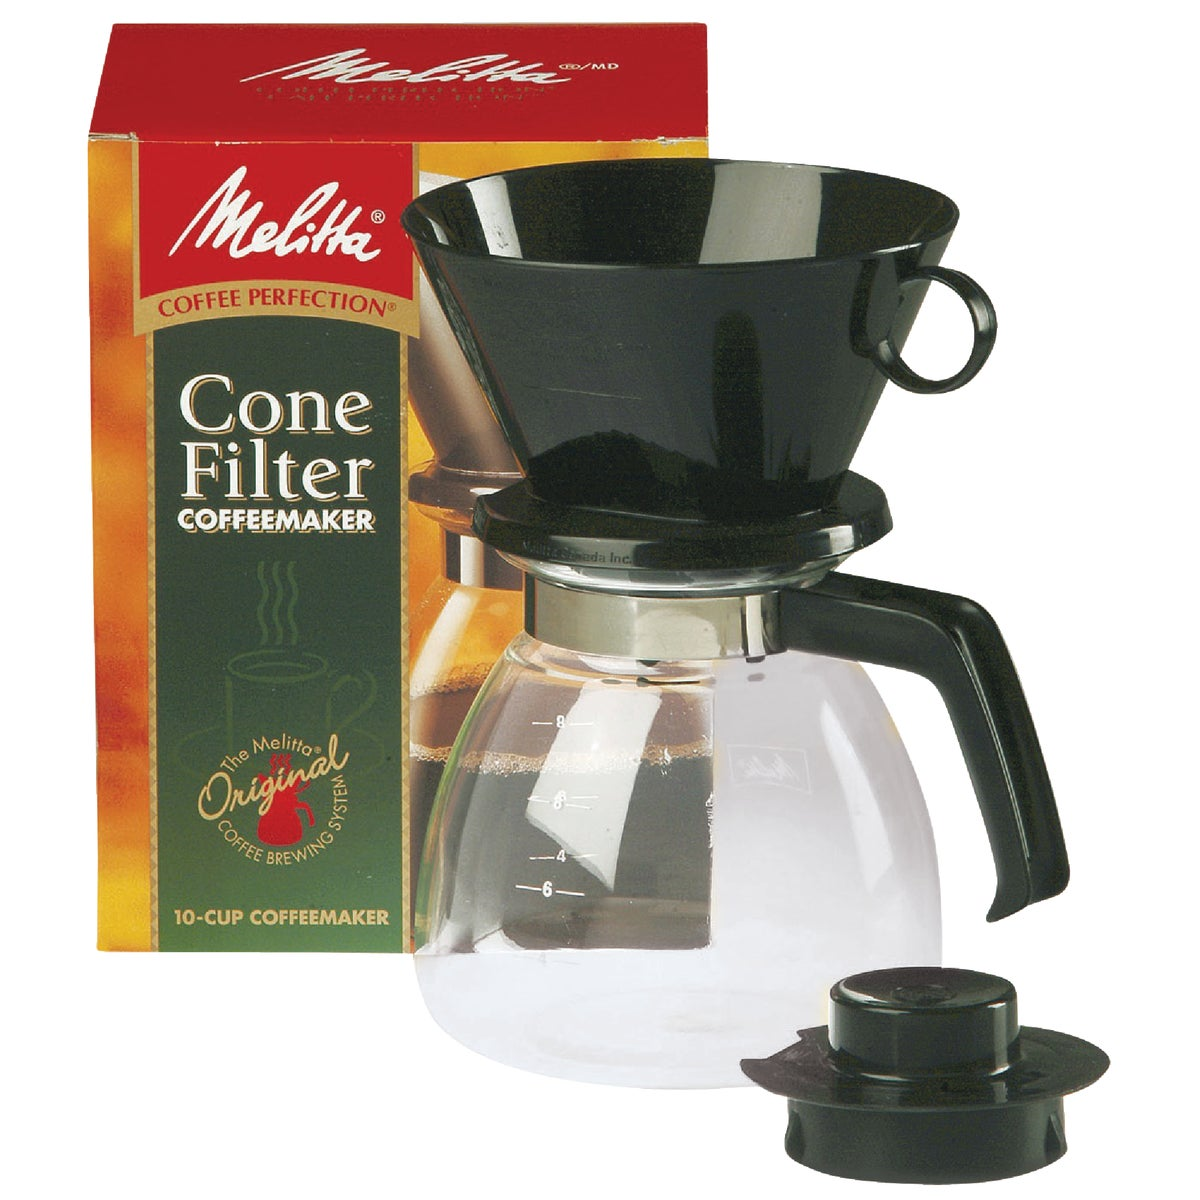 DRIP CONE COFFEE MAKER - 640616 by Melitta U S A Inc